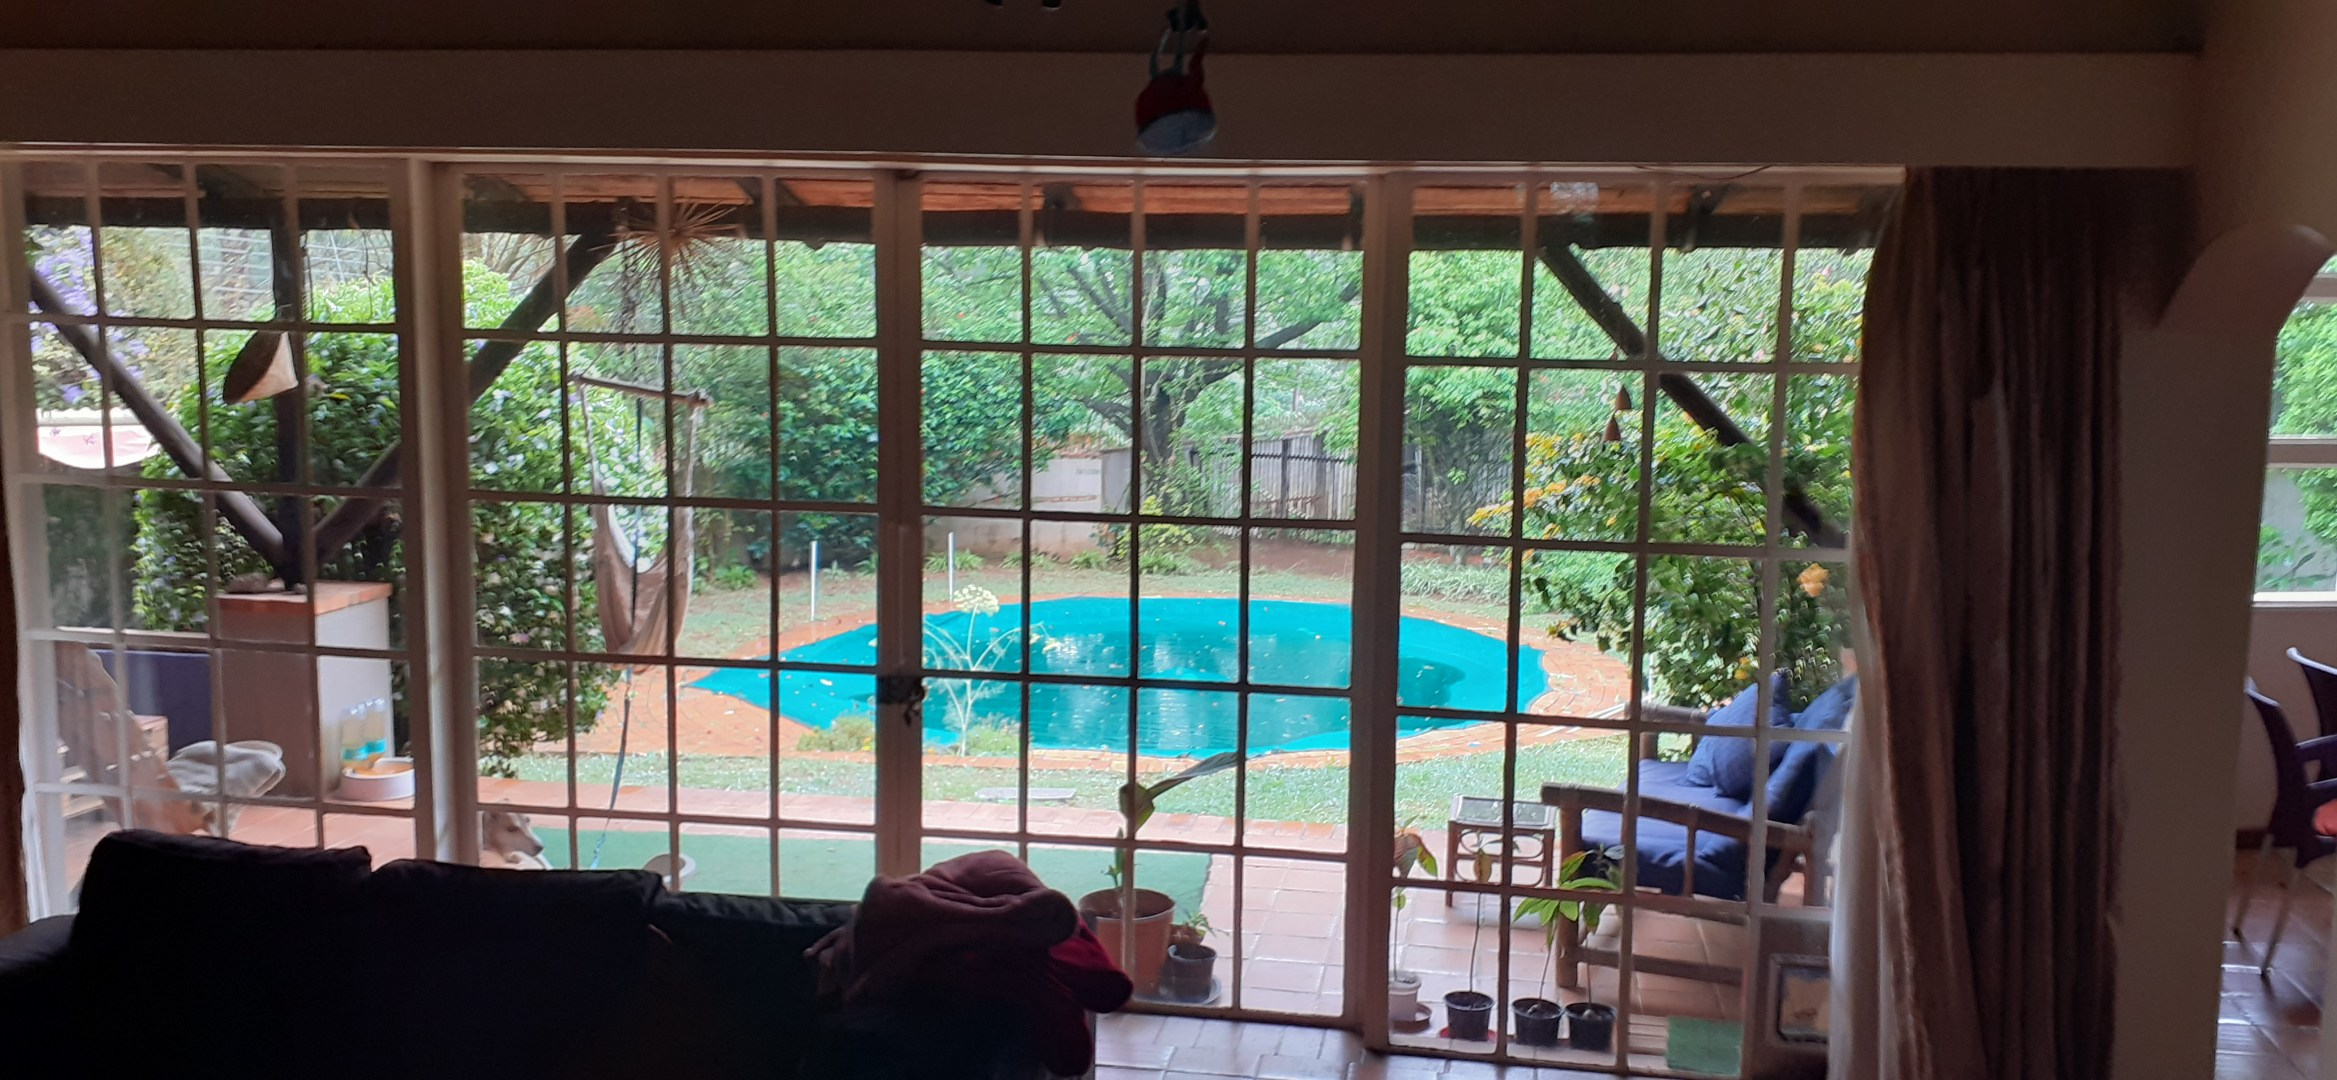 5 Bedroom House For Sale in Mbabane